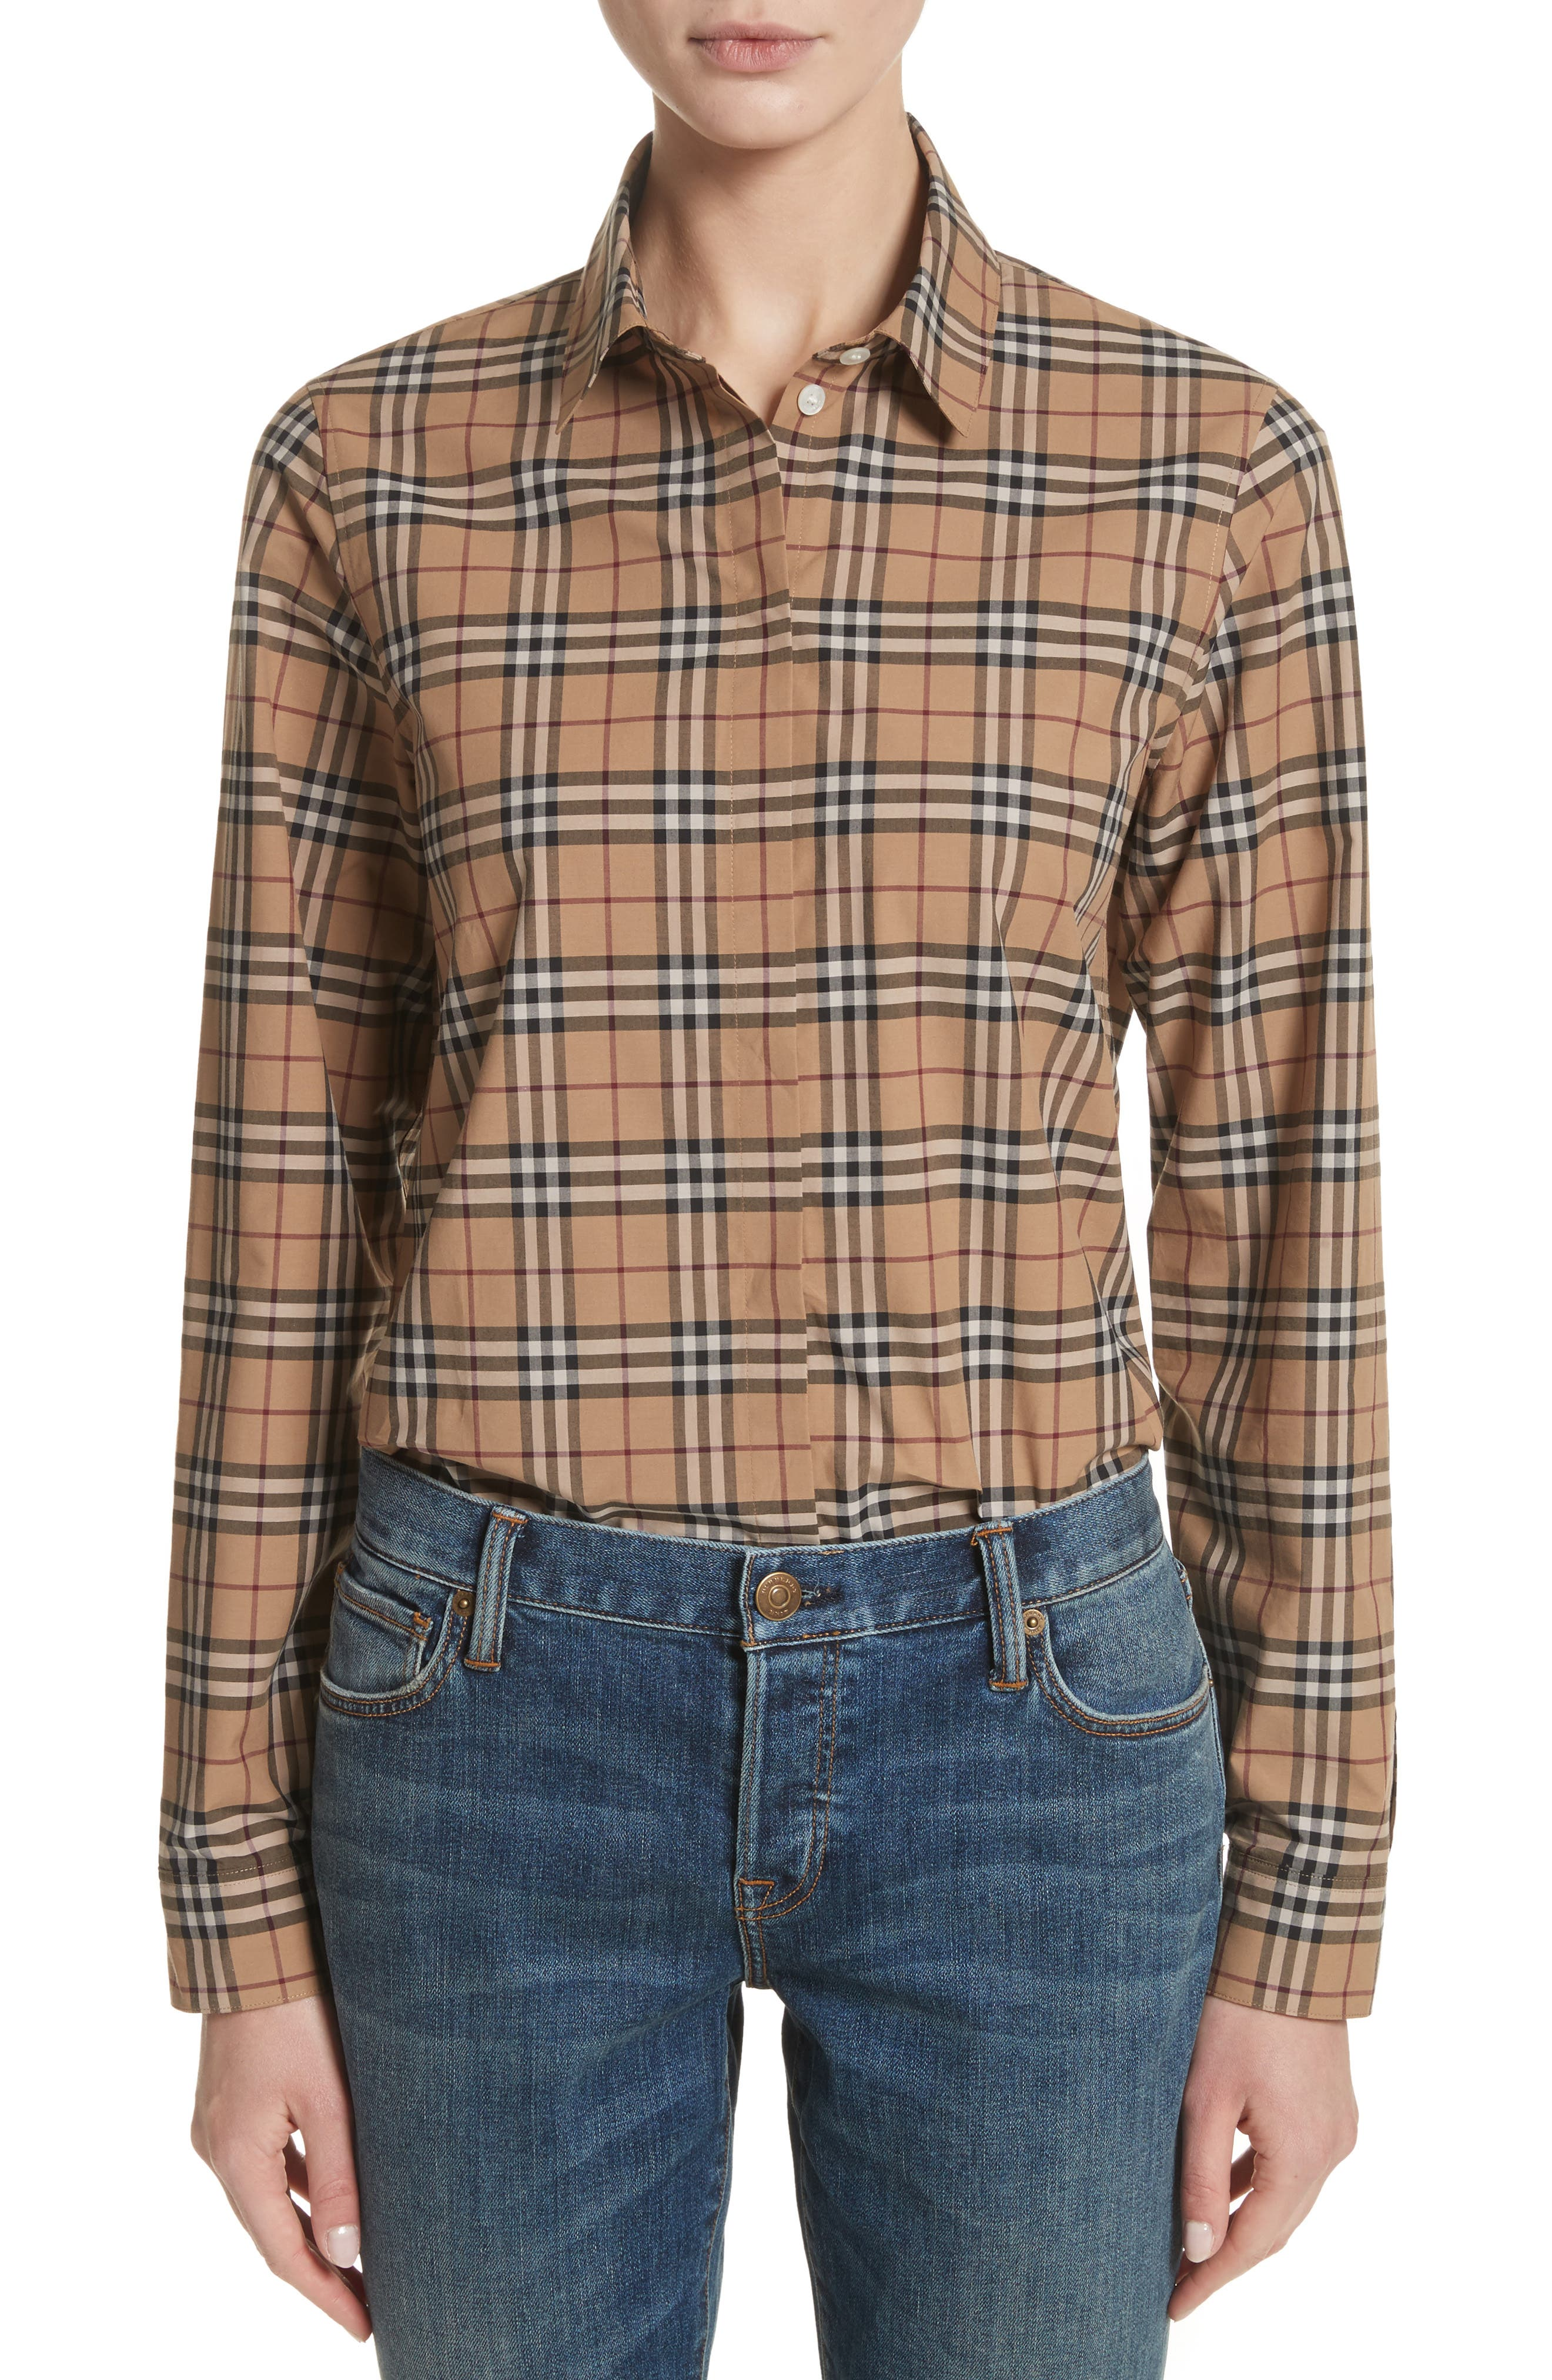 Alternate Image 1 Selected - Burberry Vintage Check Cotton Shirt